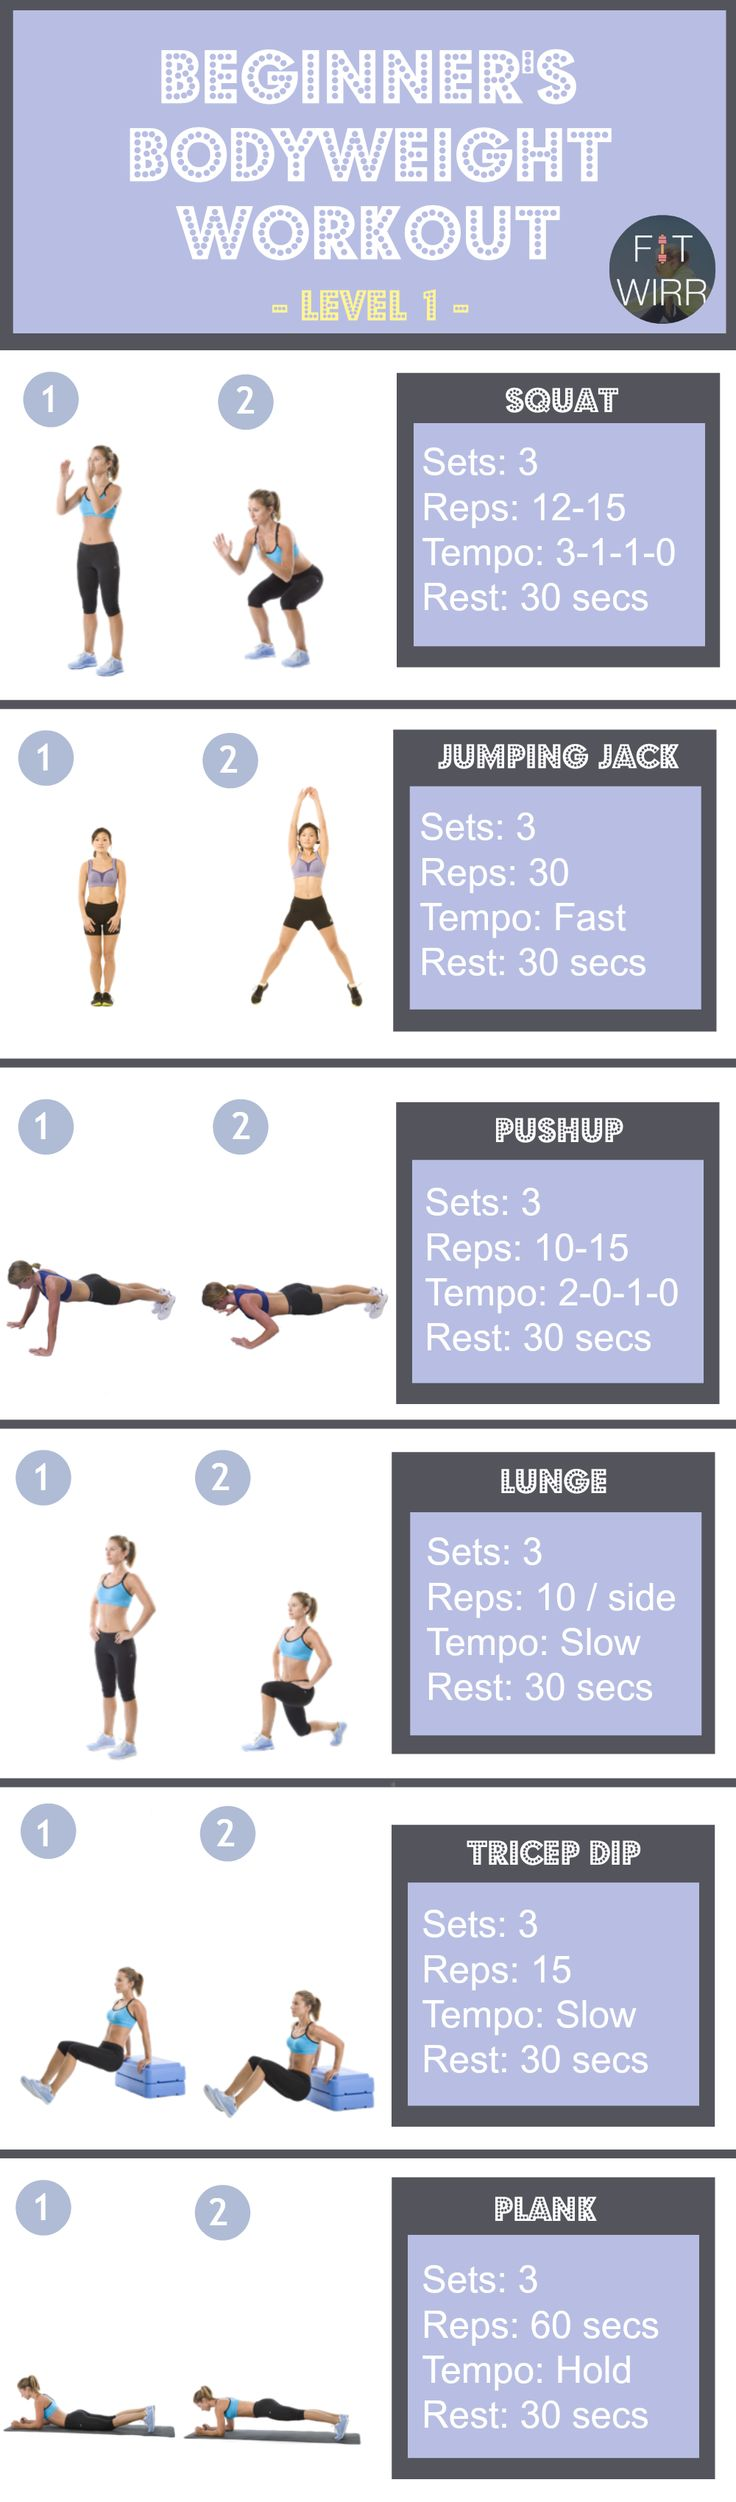 Basic Body Weight Exercises for Beginners - Level 1. No gym or fitness equipment required for this body weight workout. Perfect to kick start your fitness. Download it for free.